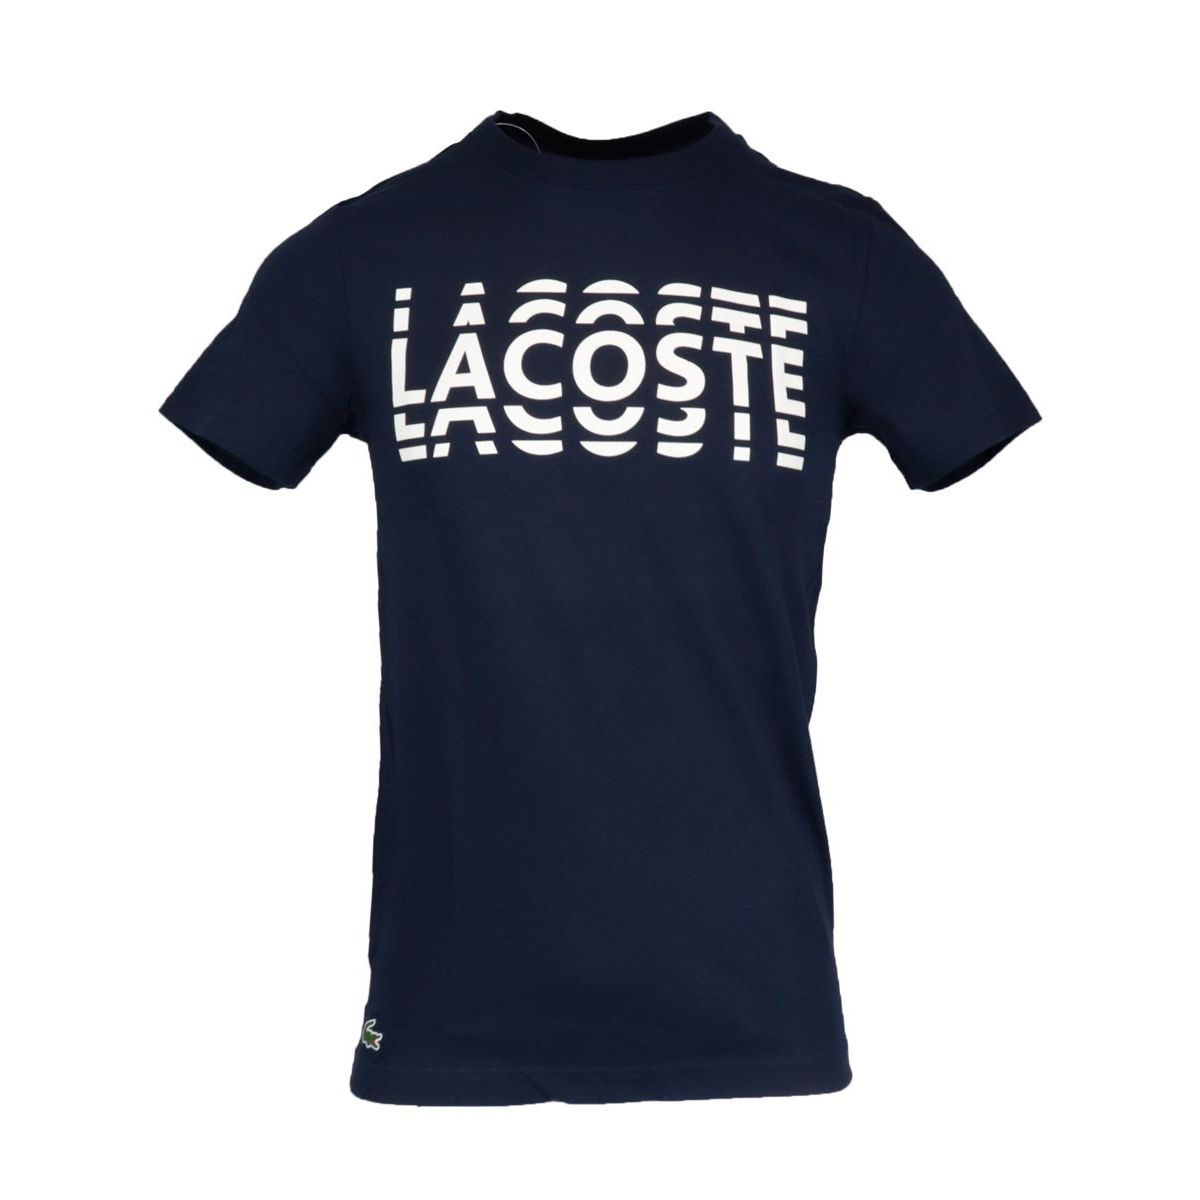 Ultra-Dry cotton blend T-shirt with logo print Blue Lacoste